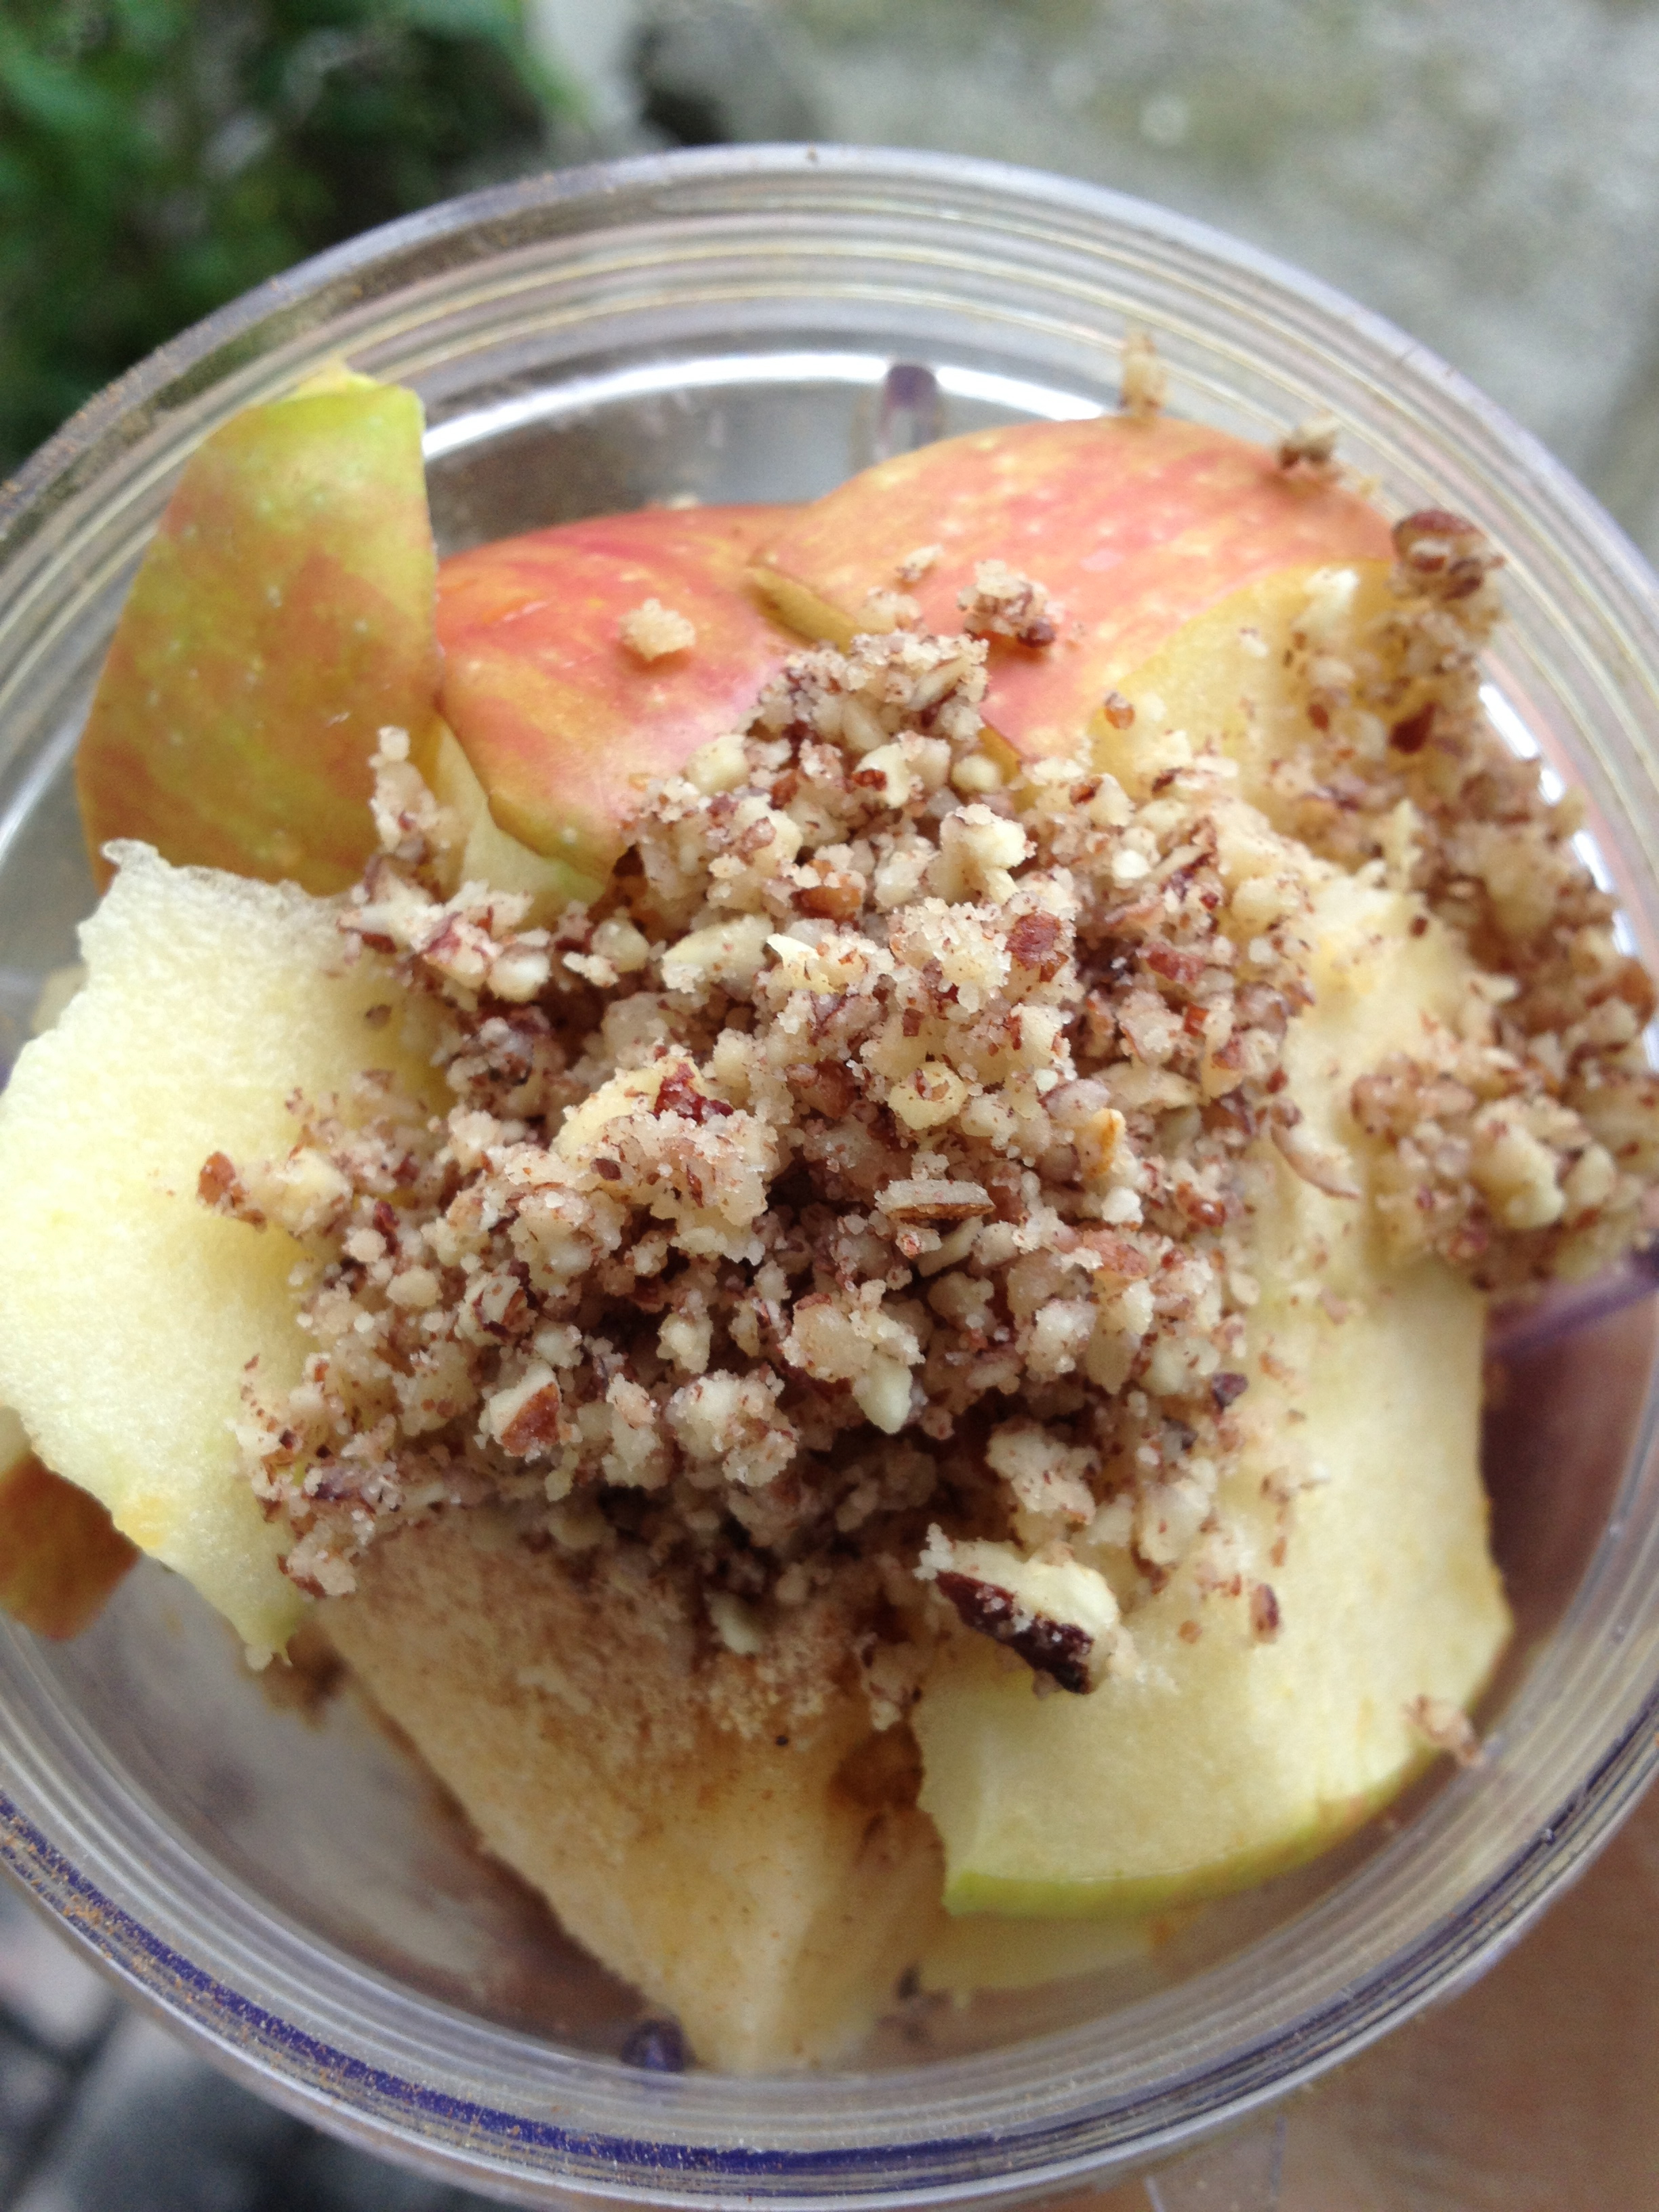 Apple and pecans